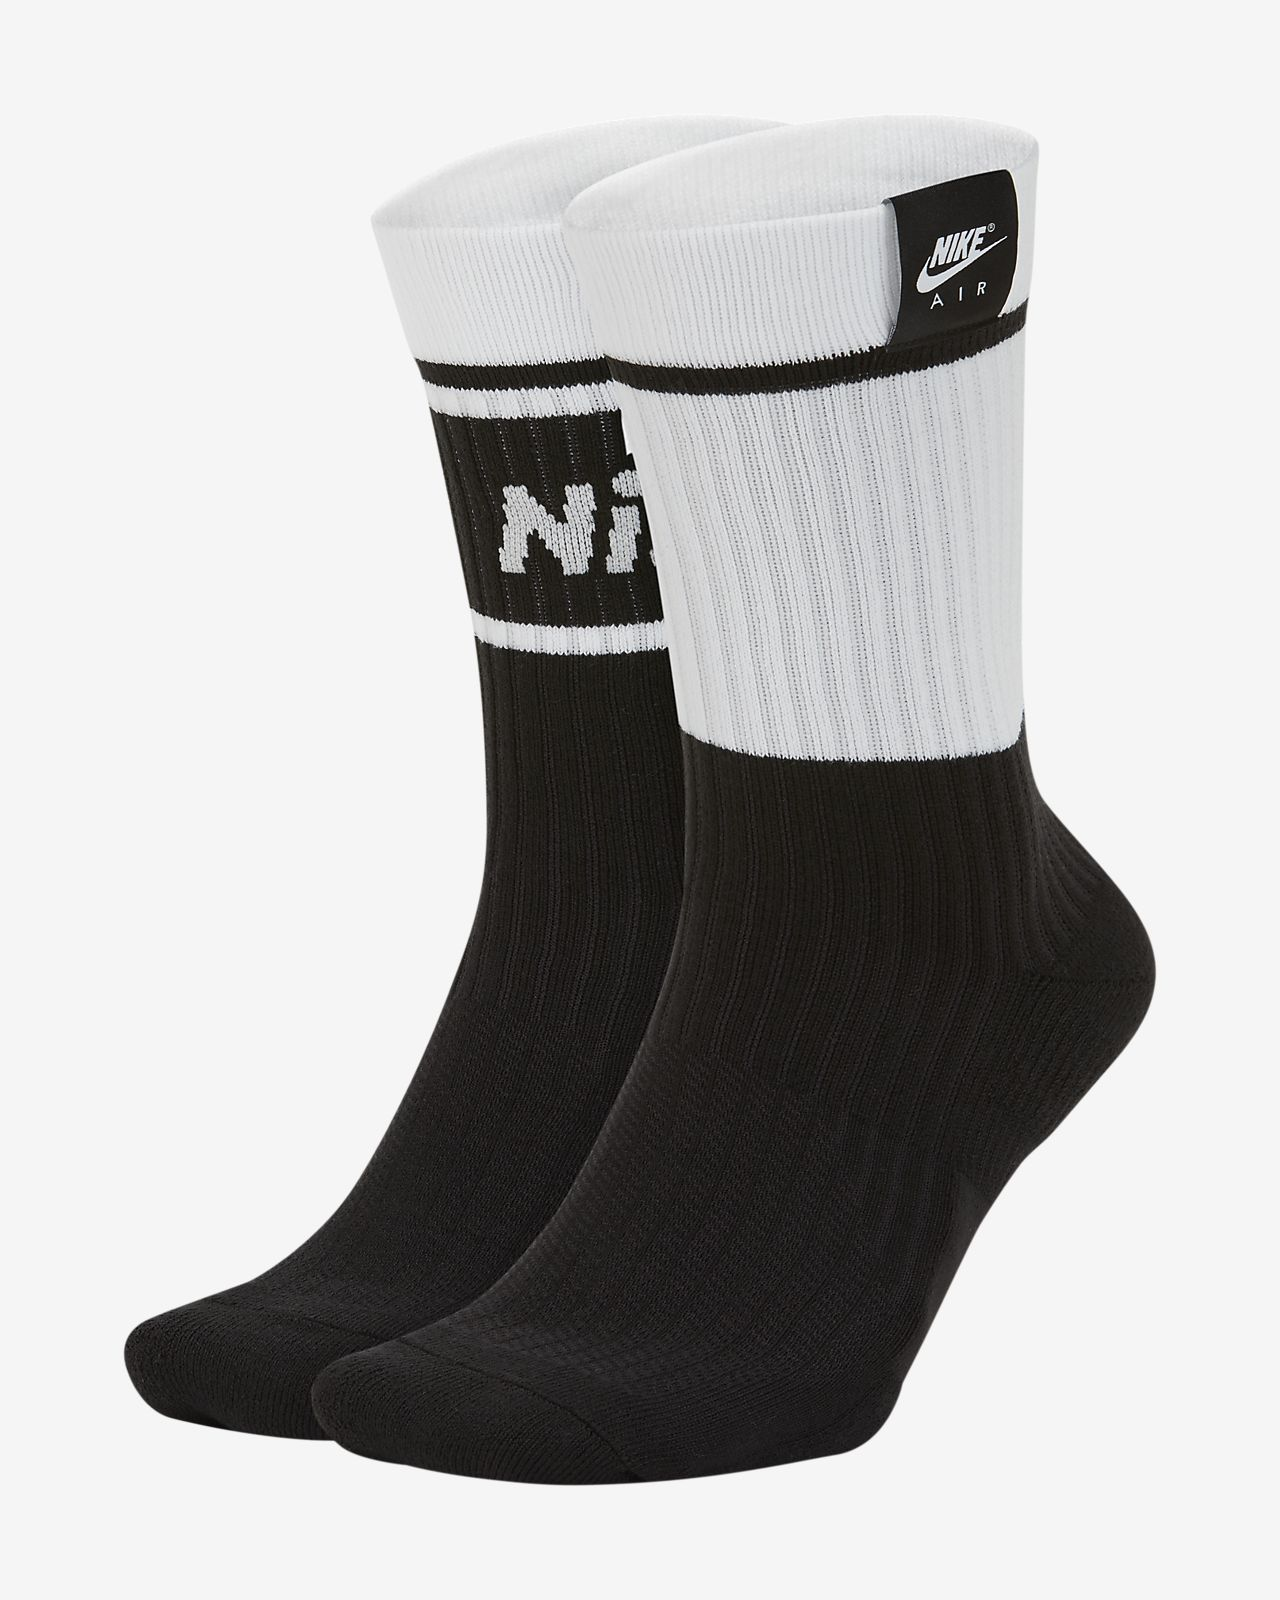 Nike Air SNKR Sox Crew Socks (2 Pairs)